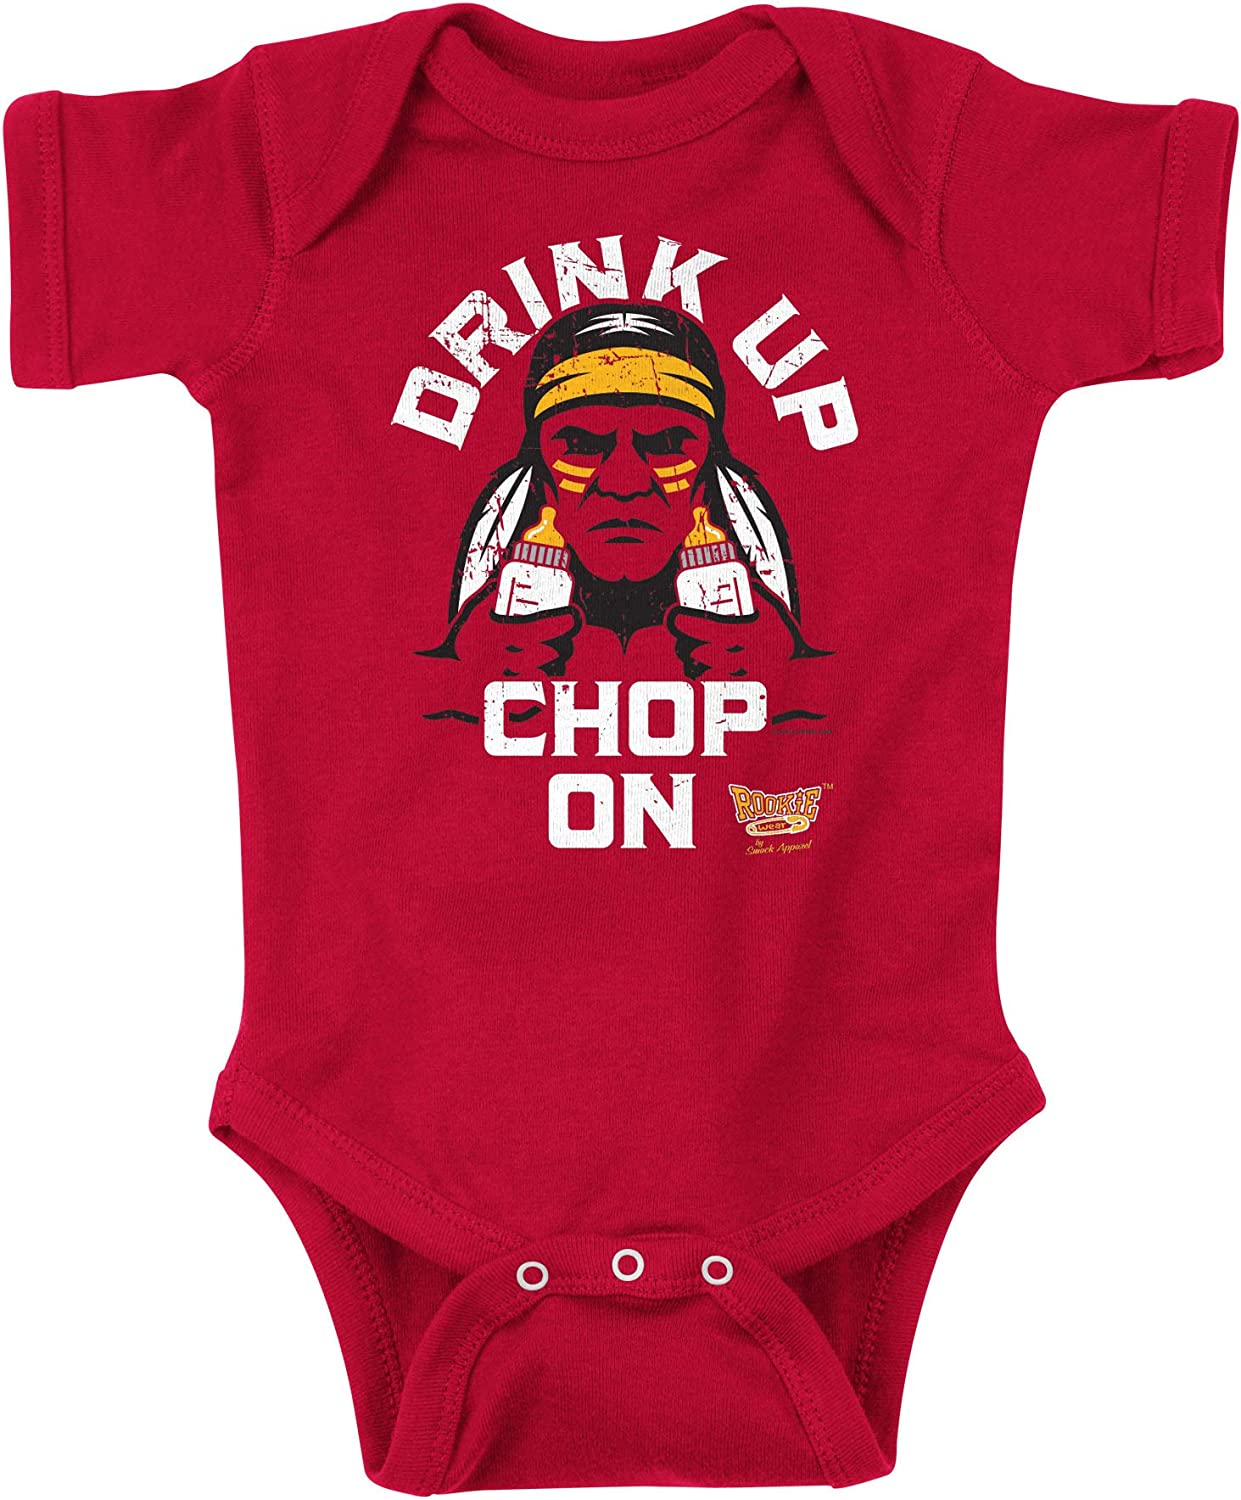 NB-4T Drink Up Chop On Red Onesie or Toddler Tee Rookie Wear by Smack Apparel Kansas City Football Fans